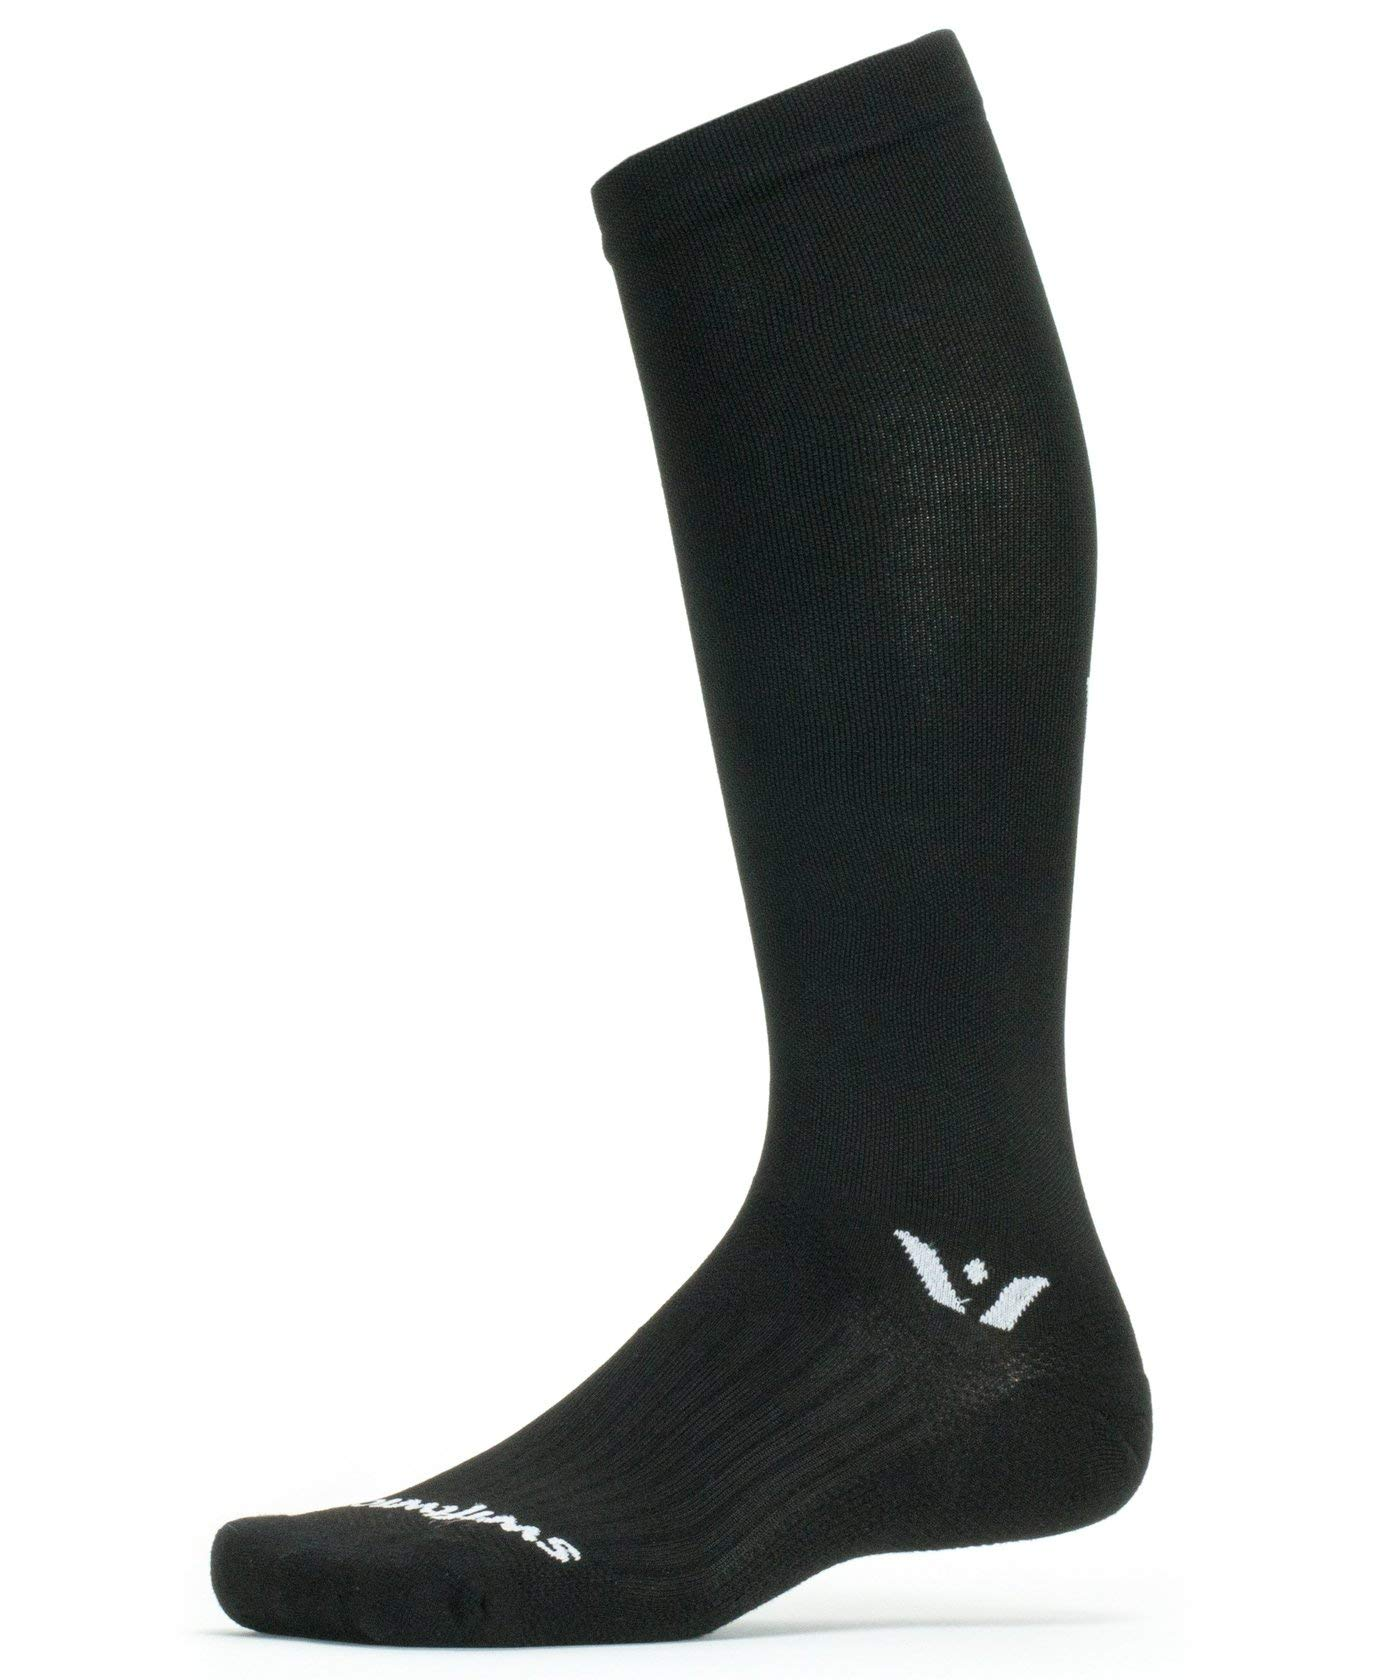 Swiftwick- Aspire Twelve | Socks Built for Running | Minimal Cushion, Blister Resistant, Knee High Compression Socks | Black, X-Large by Swiftwick